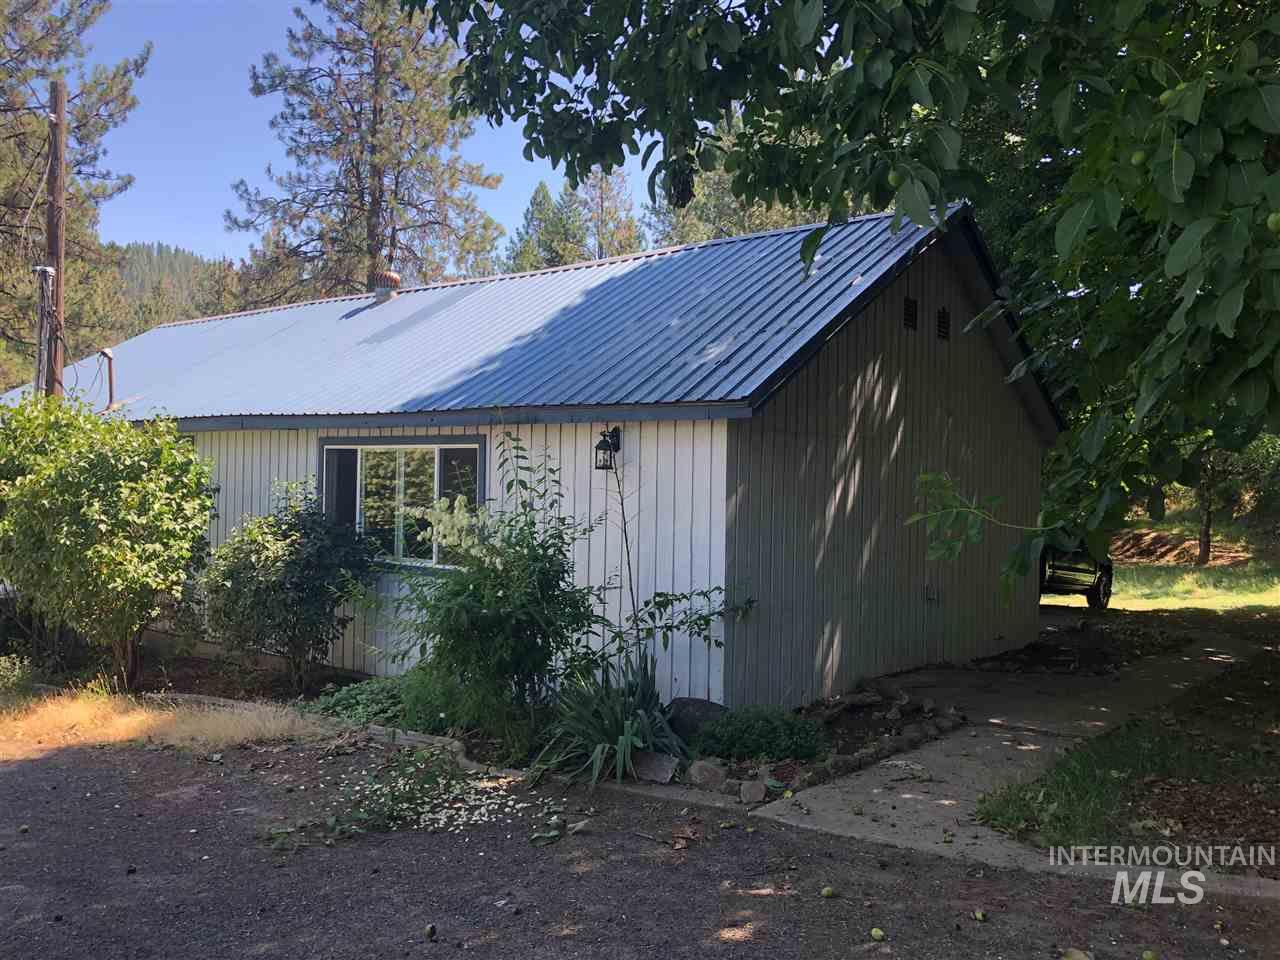 12457 Jerome Ave, Orofino, Idaho 83544, 3 Bedrooms, Residential For Sale, Price $145,000, 98738467